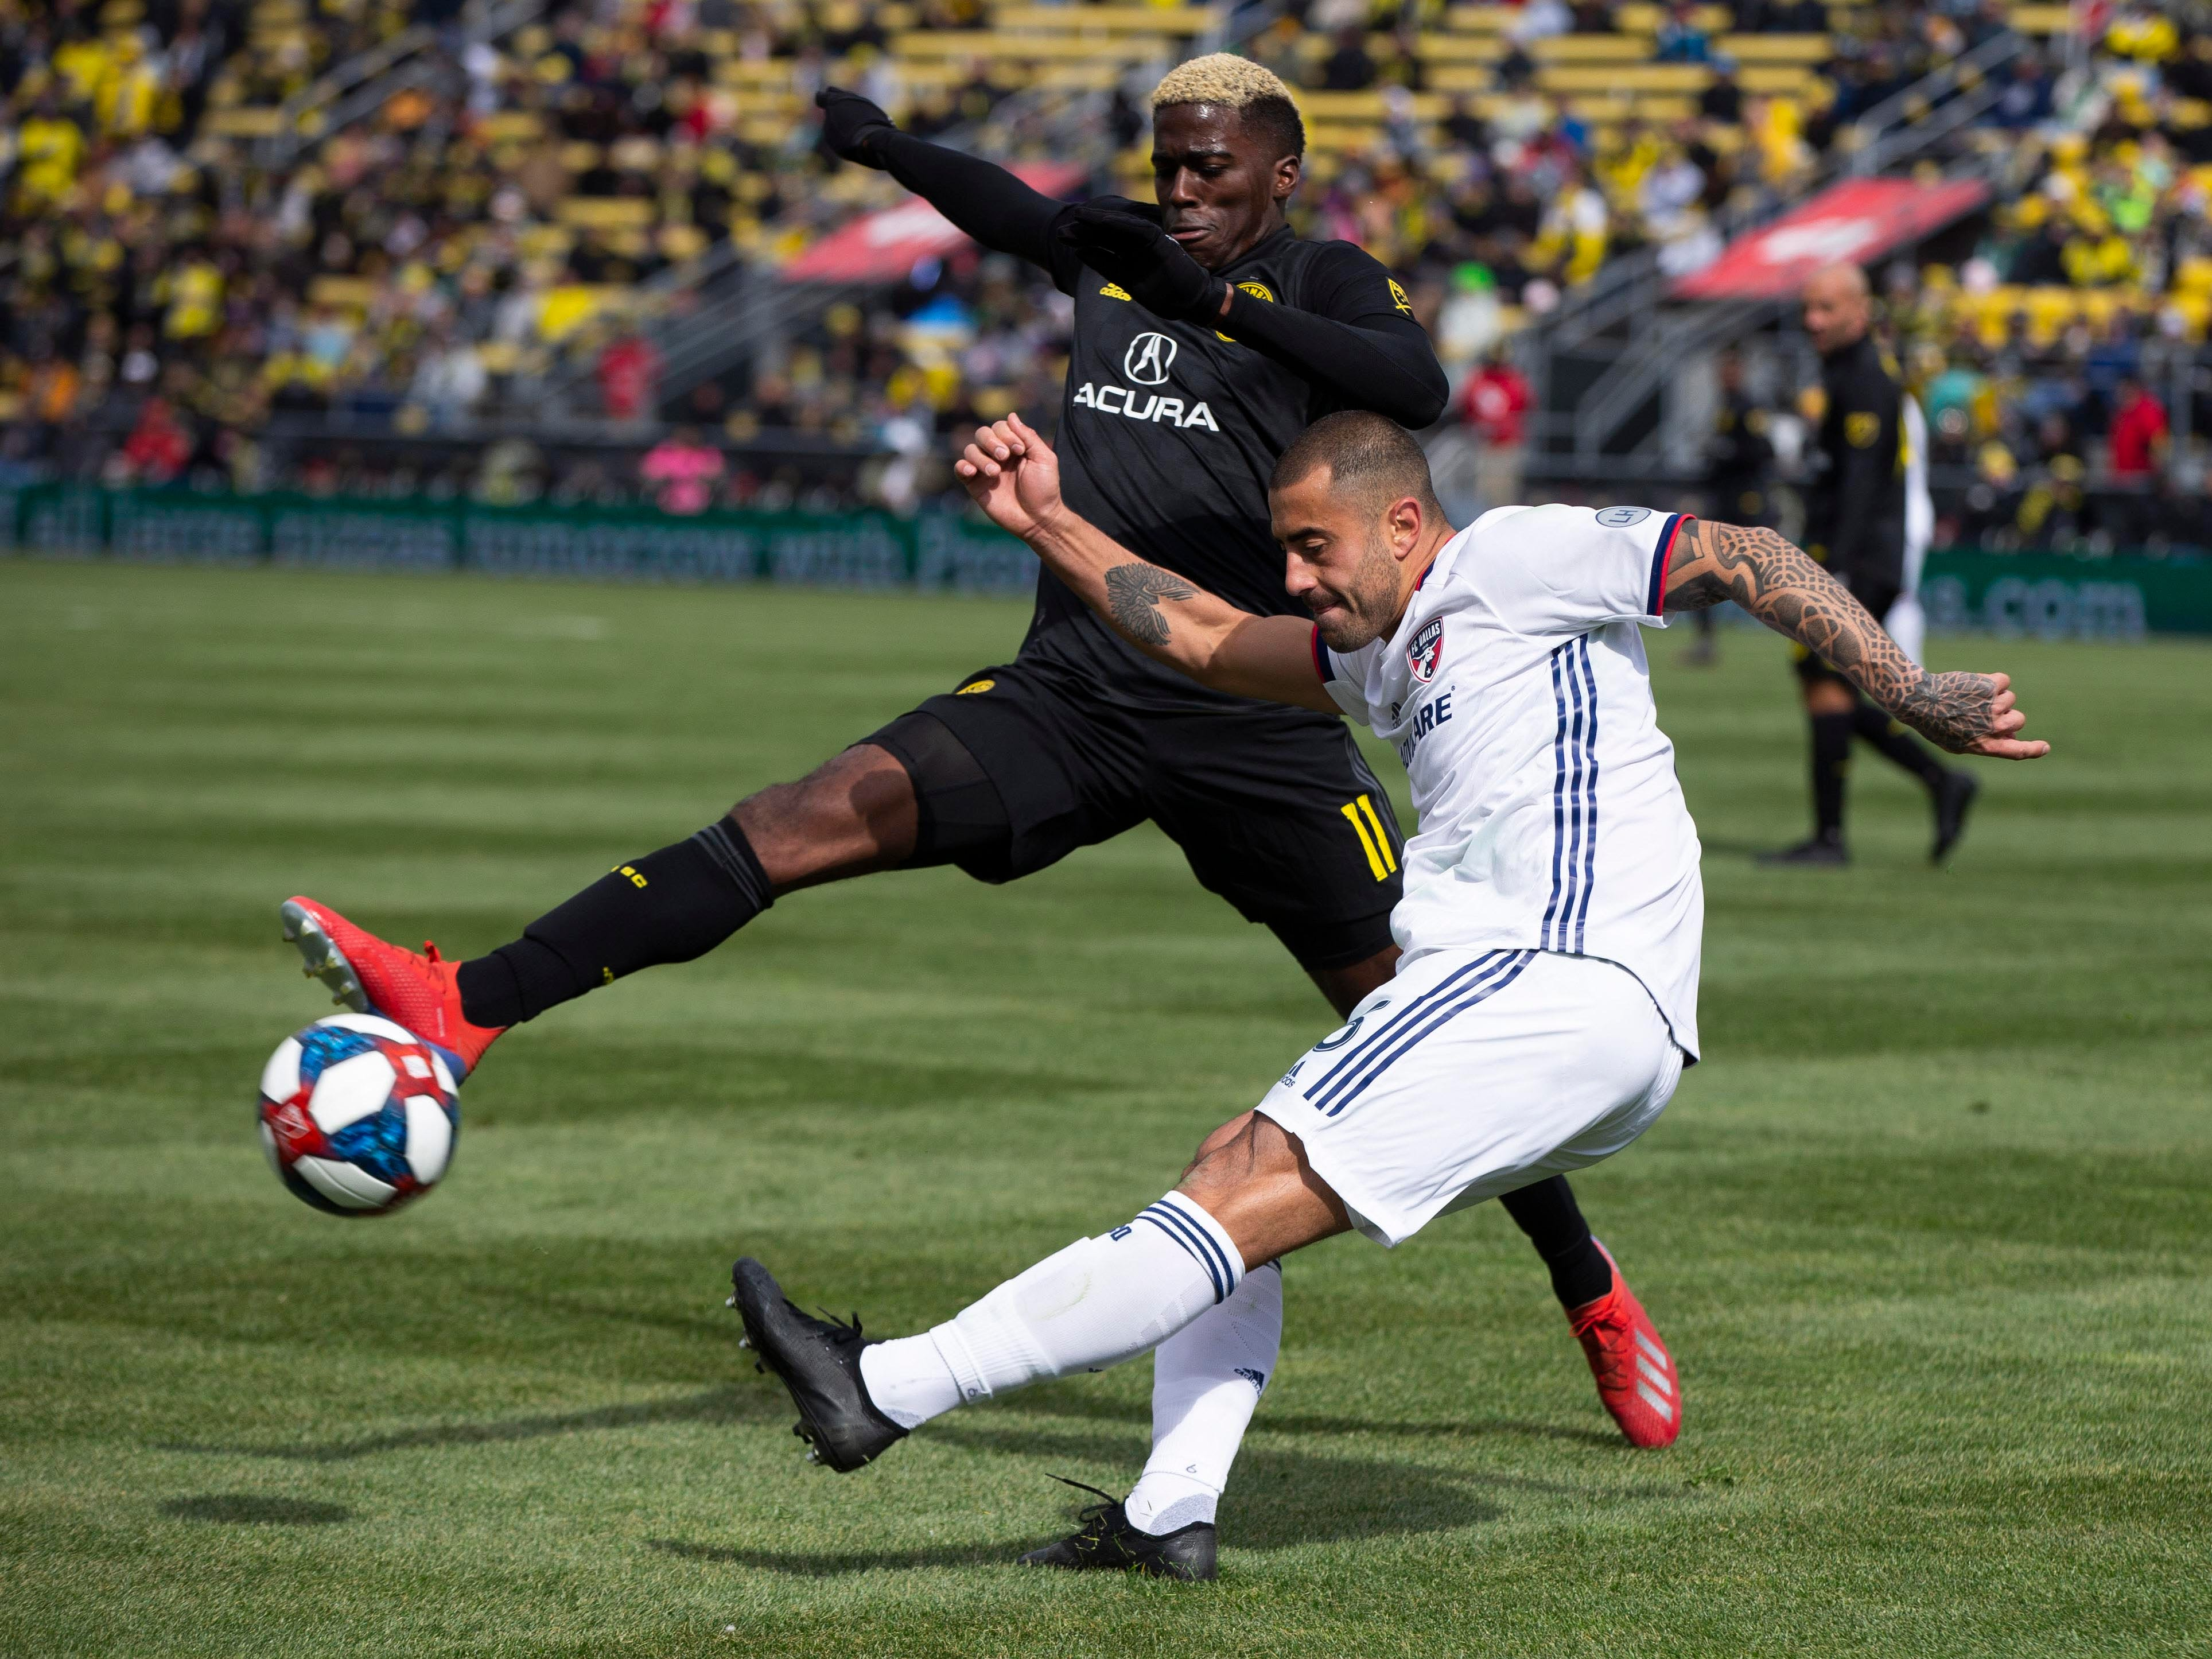 March 16: Columbus Crew SC forward Gyasi Zardes (11) tries to block a clearance from FC Dallas defender Marquinhos Pedroso at MAPFRE Stadium. Columbus won the game, 1-0.